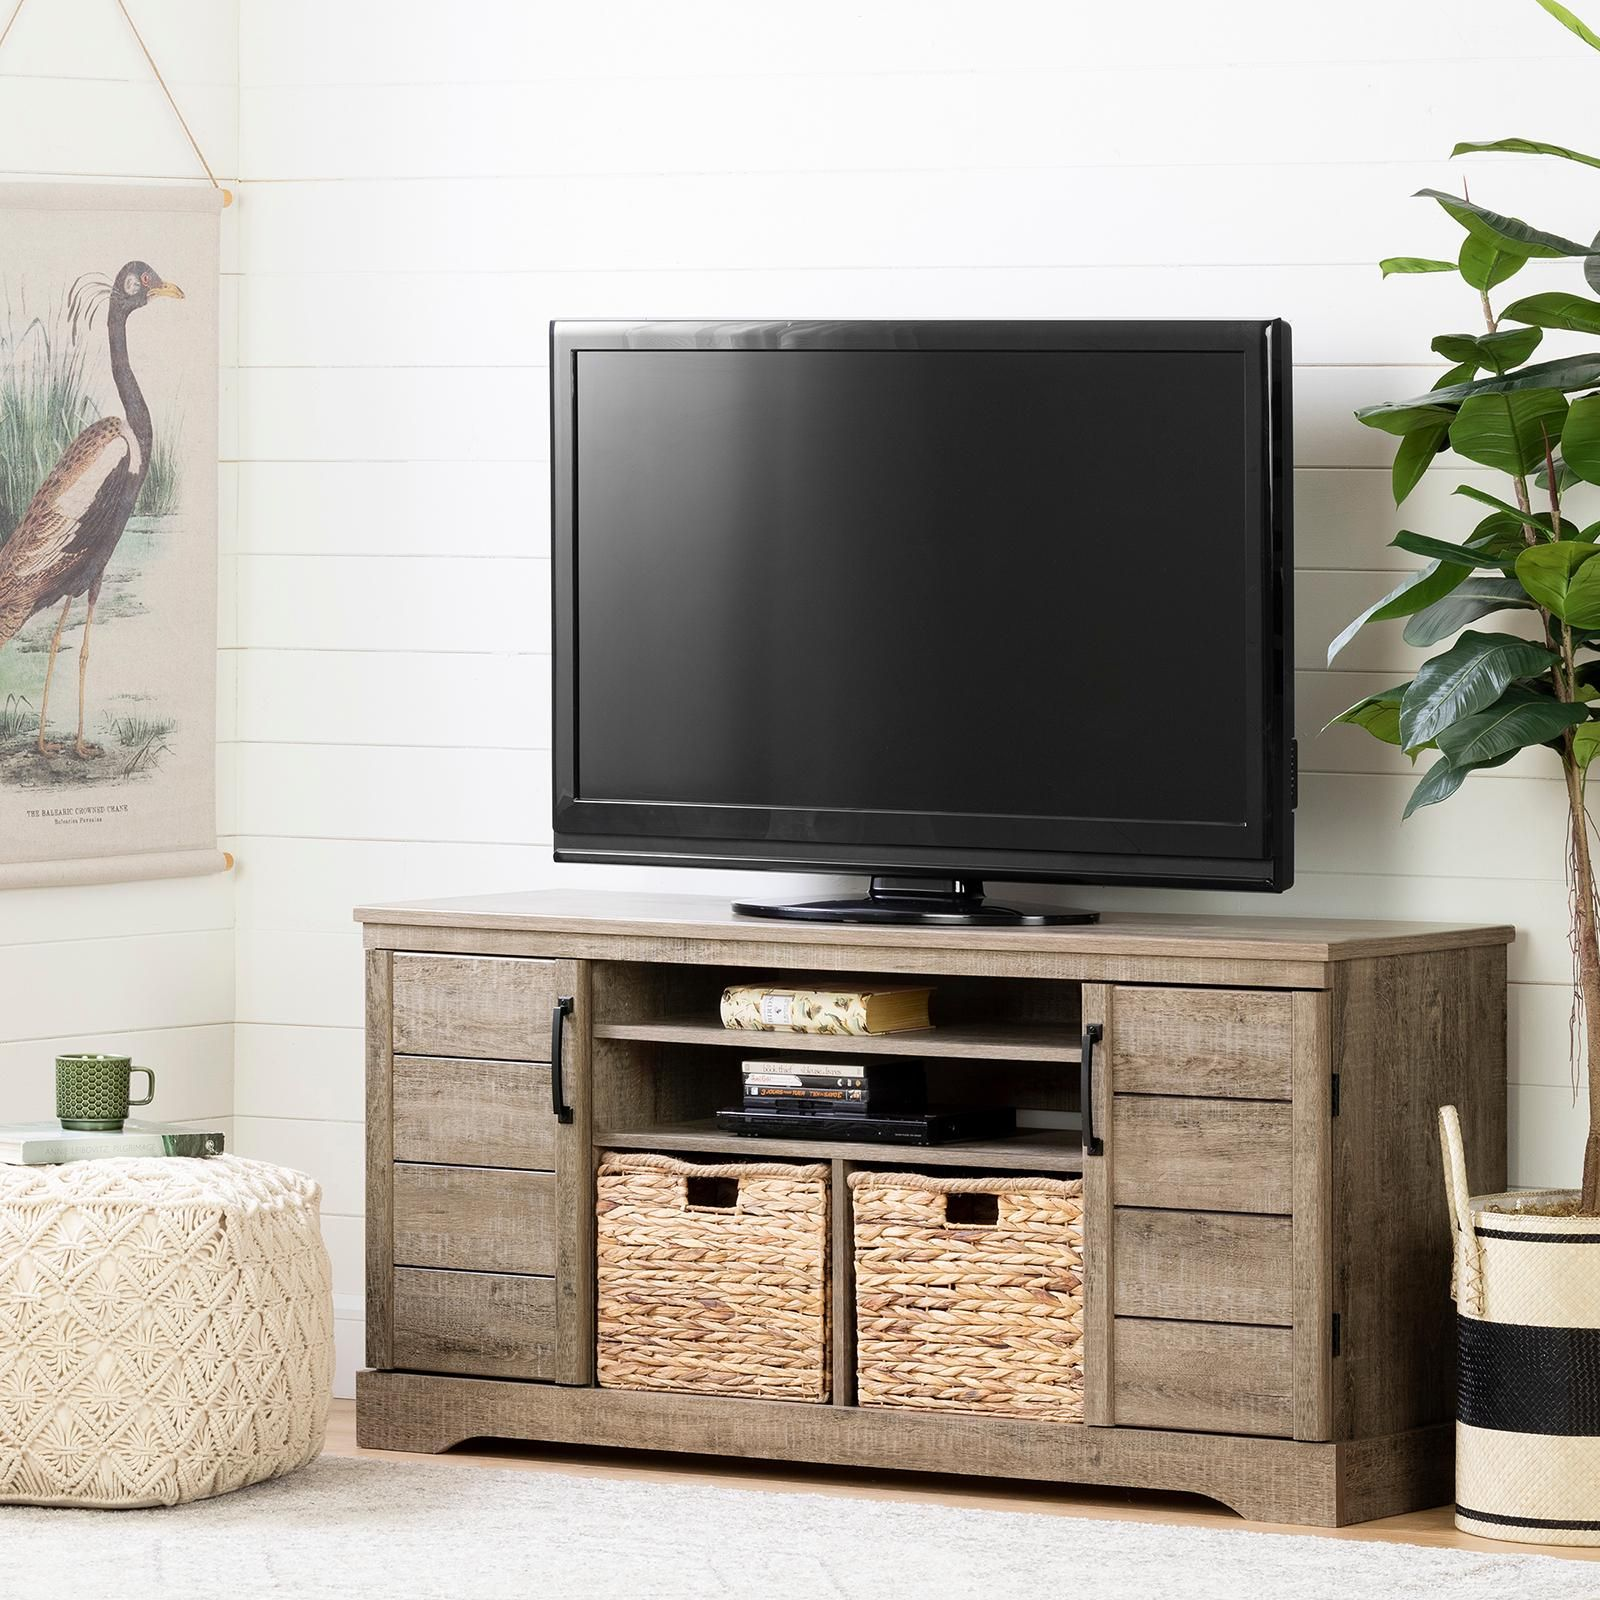 South Shore Furniture Fitcher Tv Stand Weathered Oak Oak Tv Stand Tv Stand Designs Tall Tv Stands